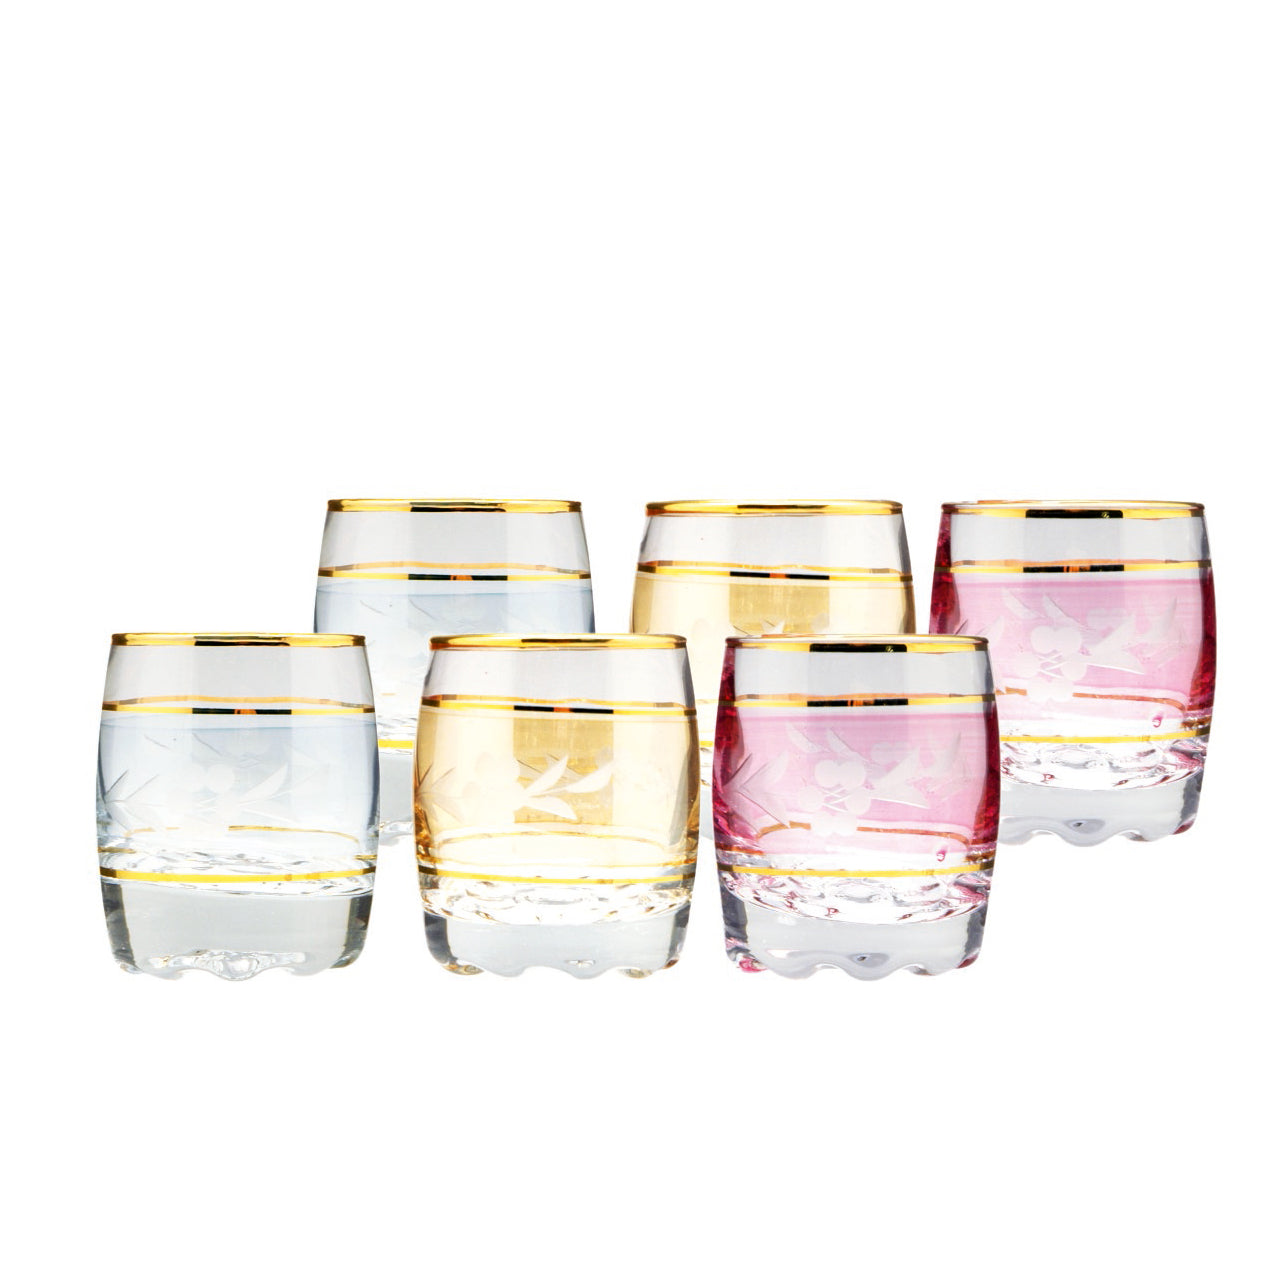 Royalford RF7446 - 6Pcs High-Grade Glassware - Portable, Dishwasher Safe | Ideal for Party Picnic BBQ Camping | Dishwasher Safe | Perfect for Whisky Water Juice Cocktails Wine & More (Multi-Colour)